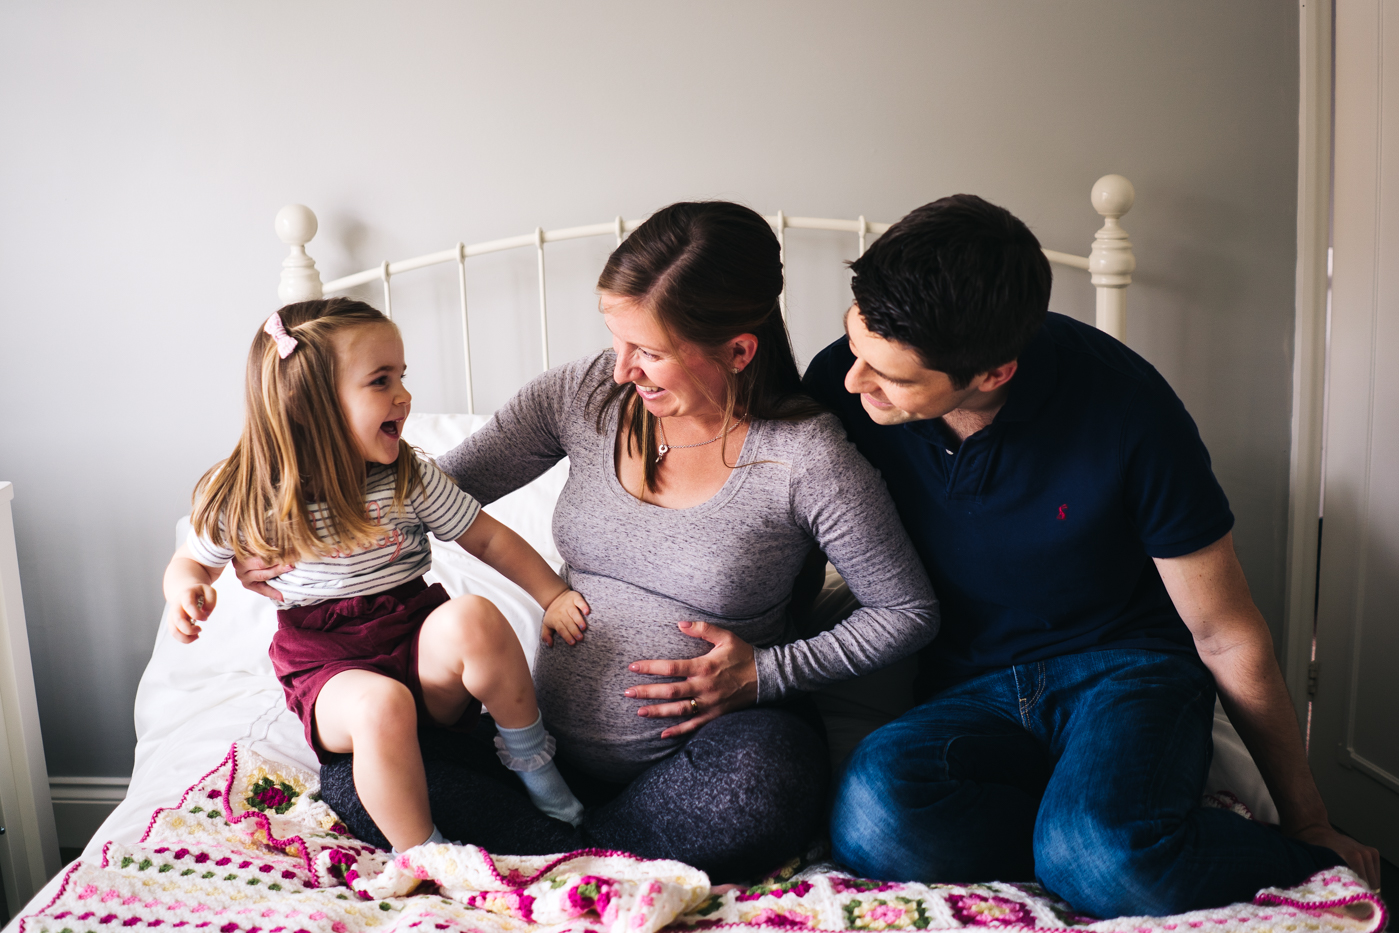 maternity-family-newborn-photography-teesside-stockton-middlesbrough-north-yorkshire-relaxed-0002.jpg